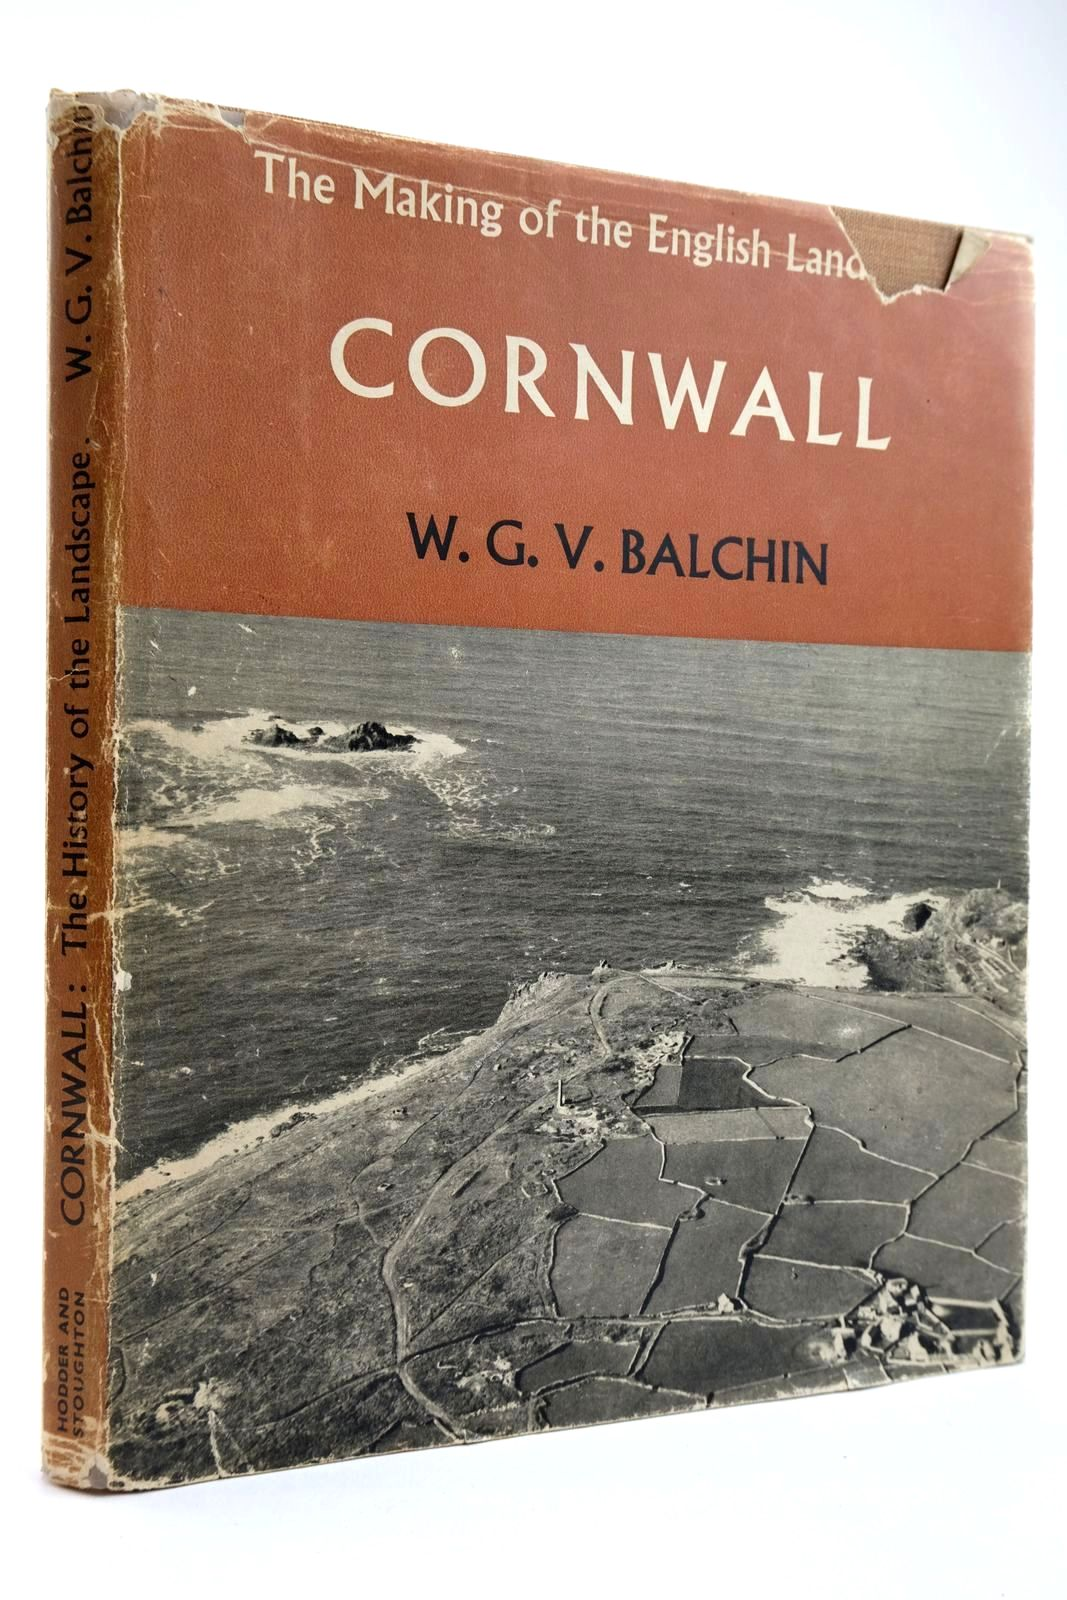 Photo of CORNWALL AN ILLUSTRATED ESSAY ON THE HISTORY OF THE LANDSCAPE written by Balchin, W.G.V. published by Hodder & Stoughton (STOCK CODE: 2133685)  for sale by Stella & Rose's Books